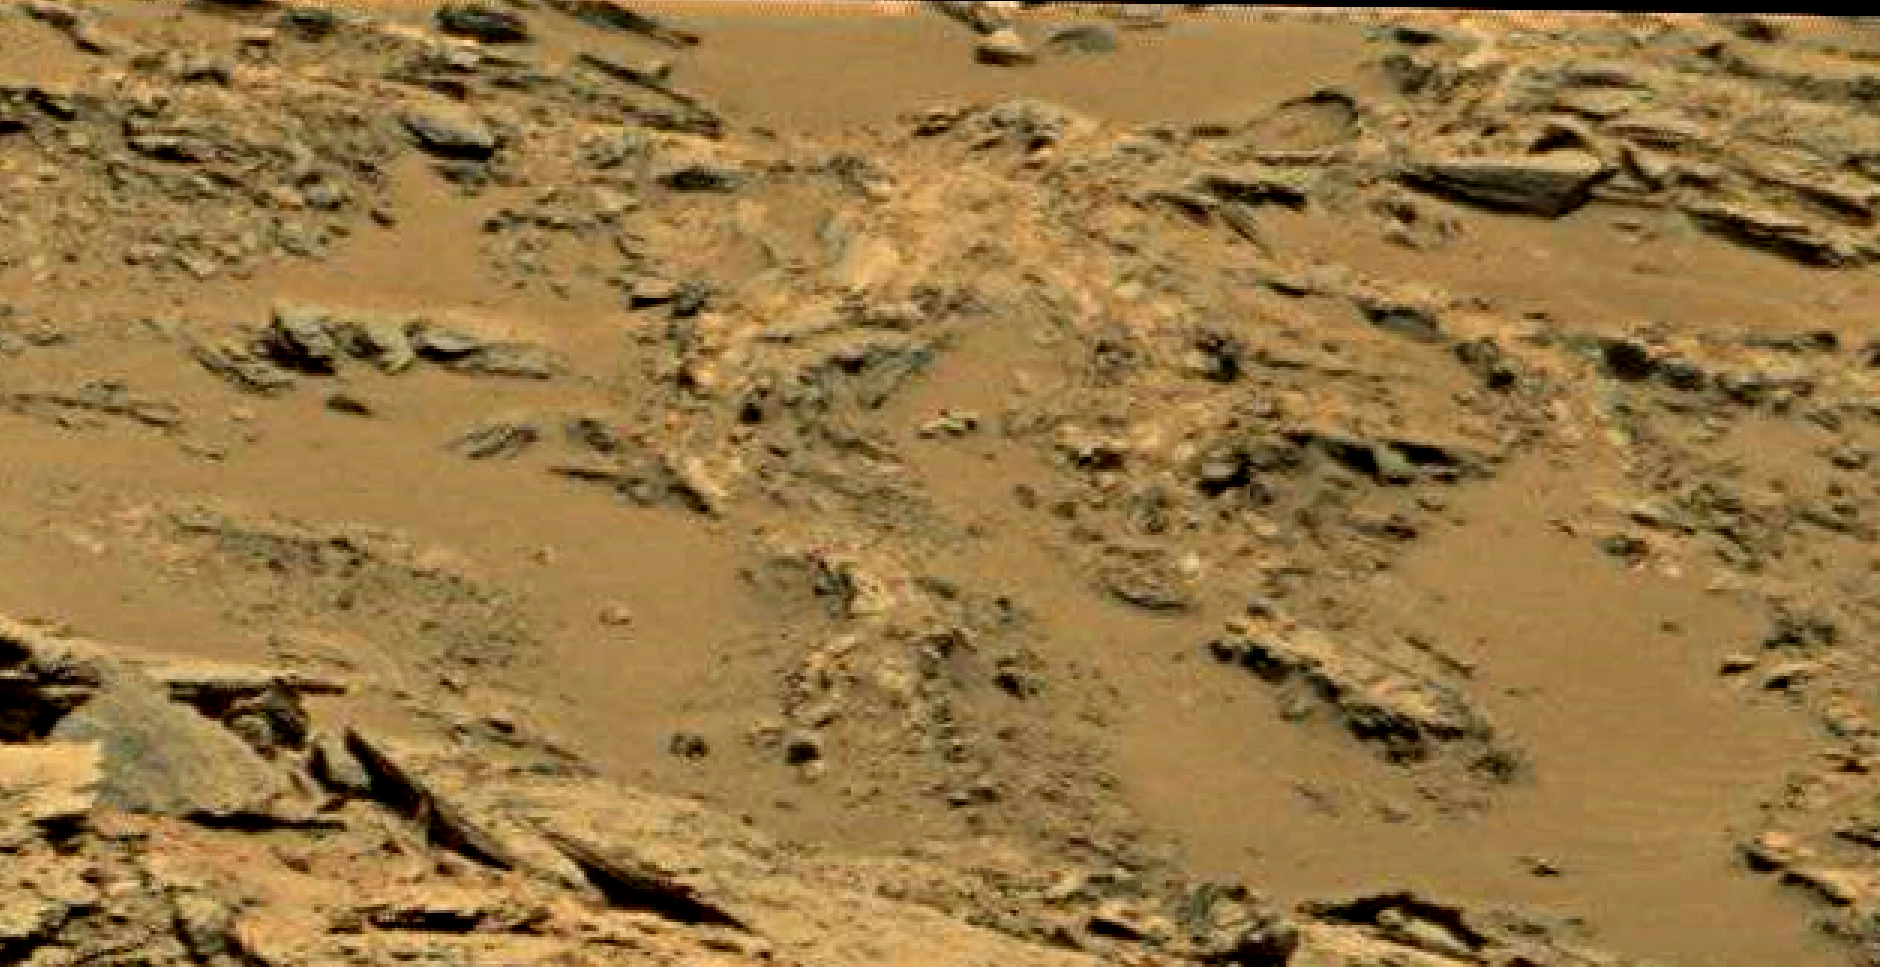 mars sol 1353 anomaly-artifacts 72 was life on mars